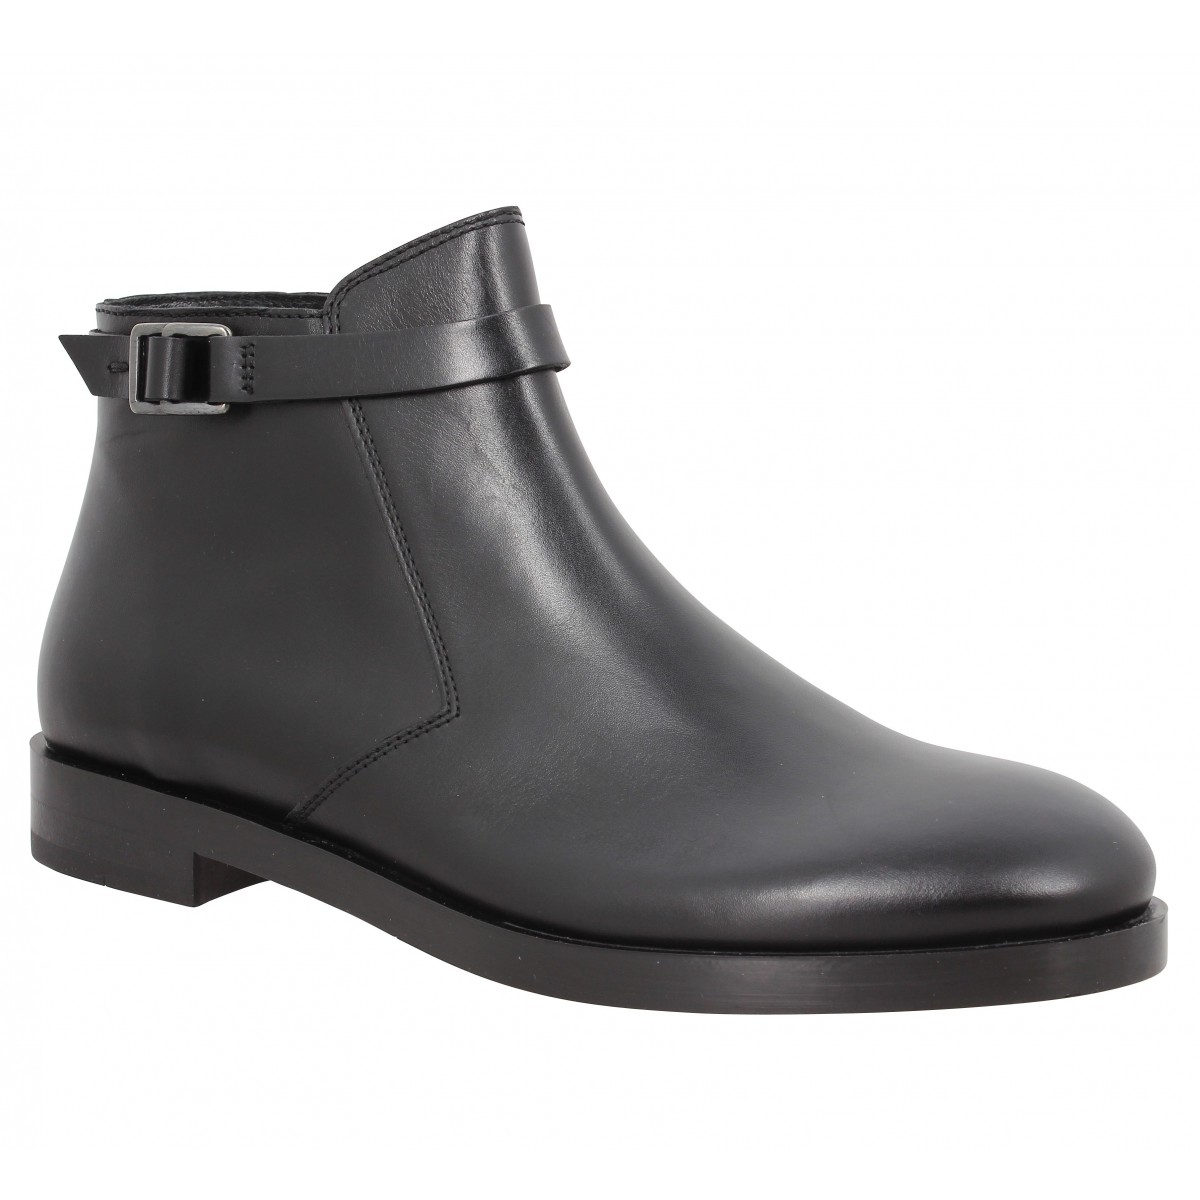 Bottines TRIVER FLIGHT 165 106 cuir Noir